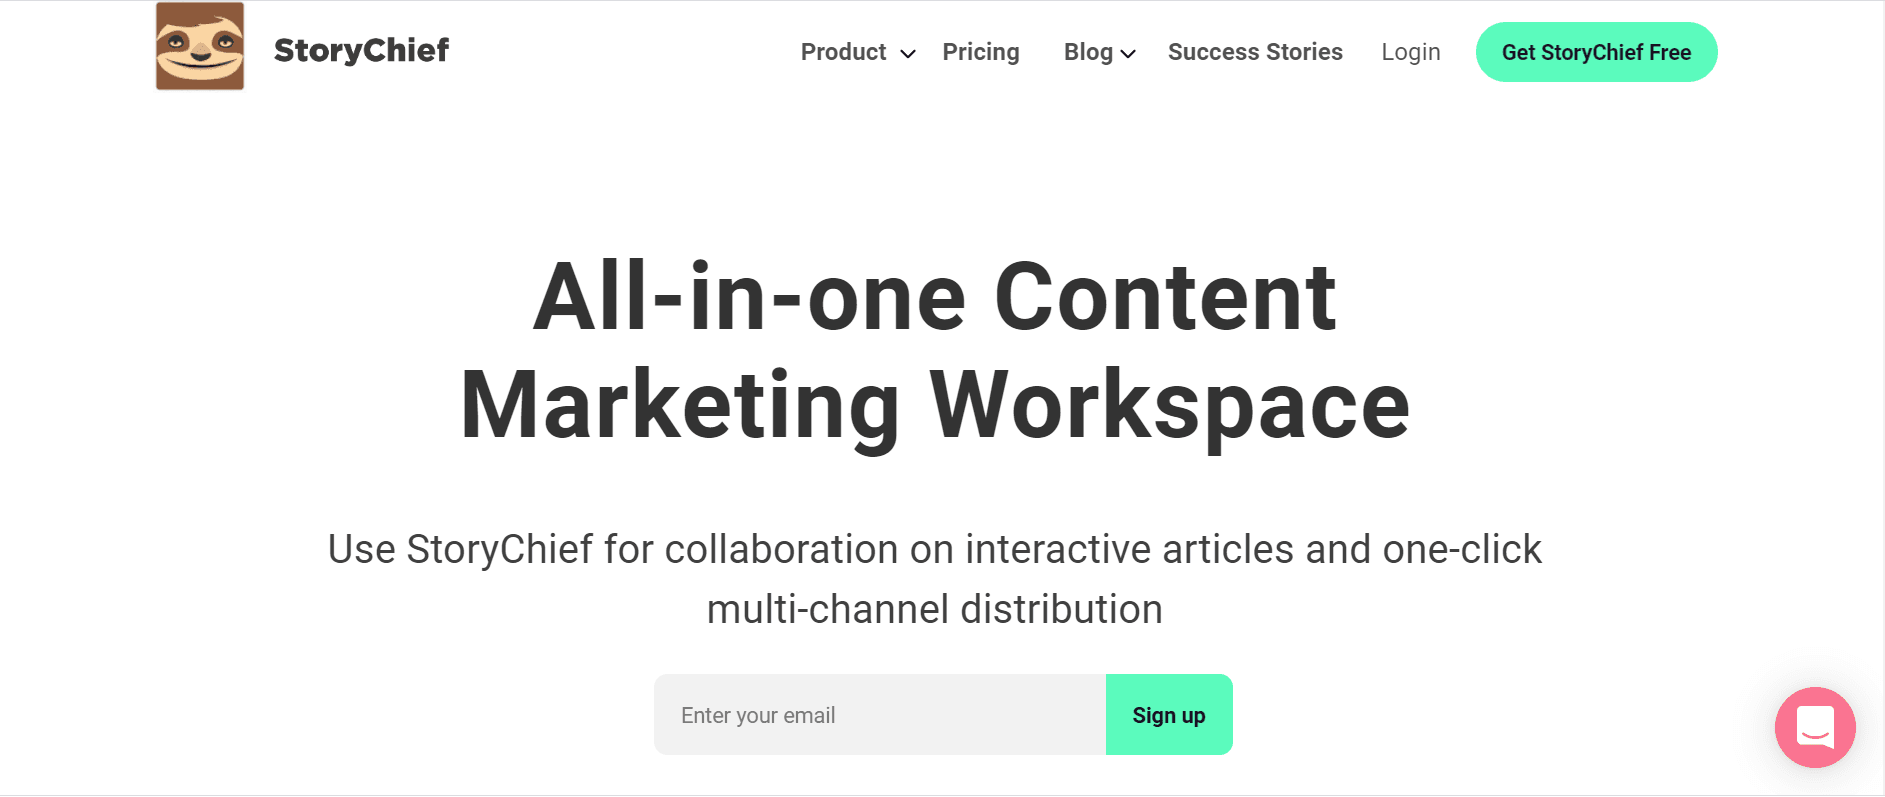 StoryChief Onboarding Teardown - (removing) the complexity out of simplicity